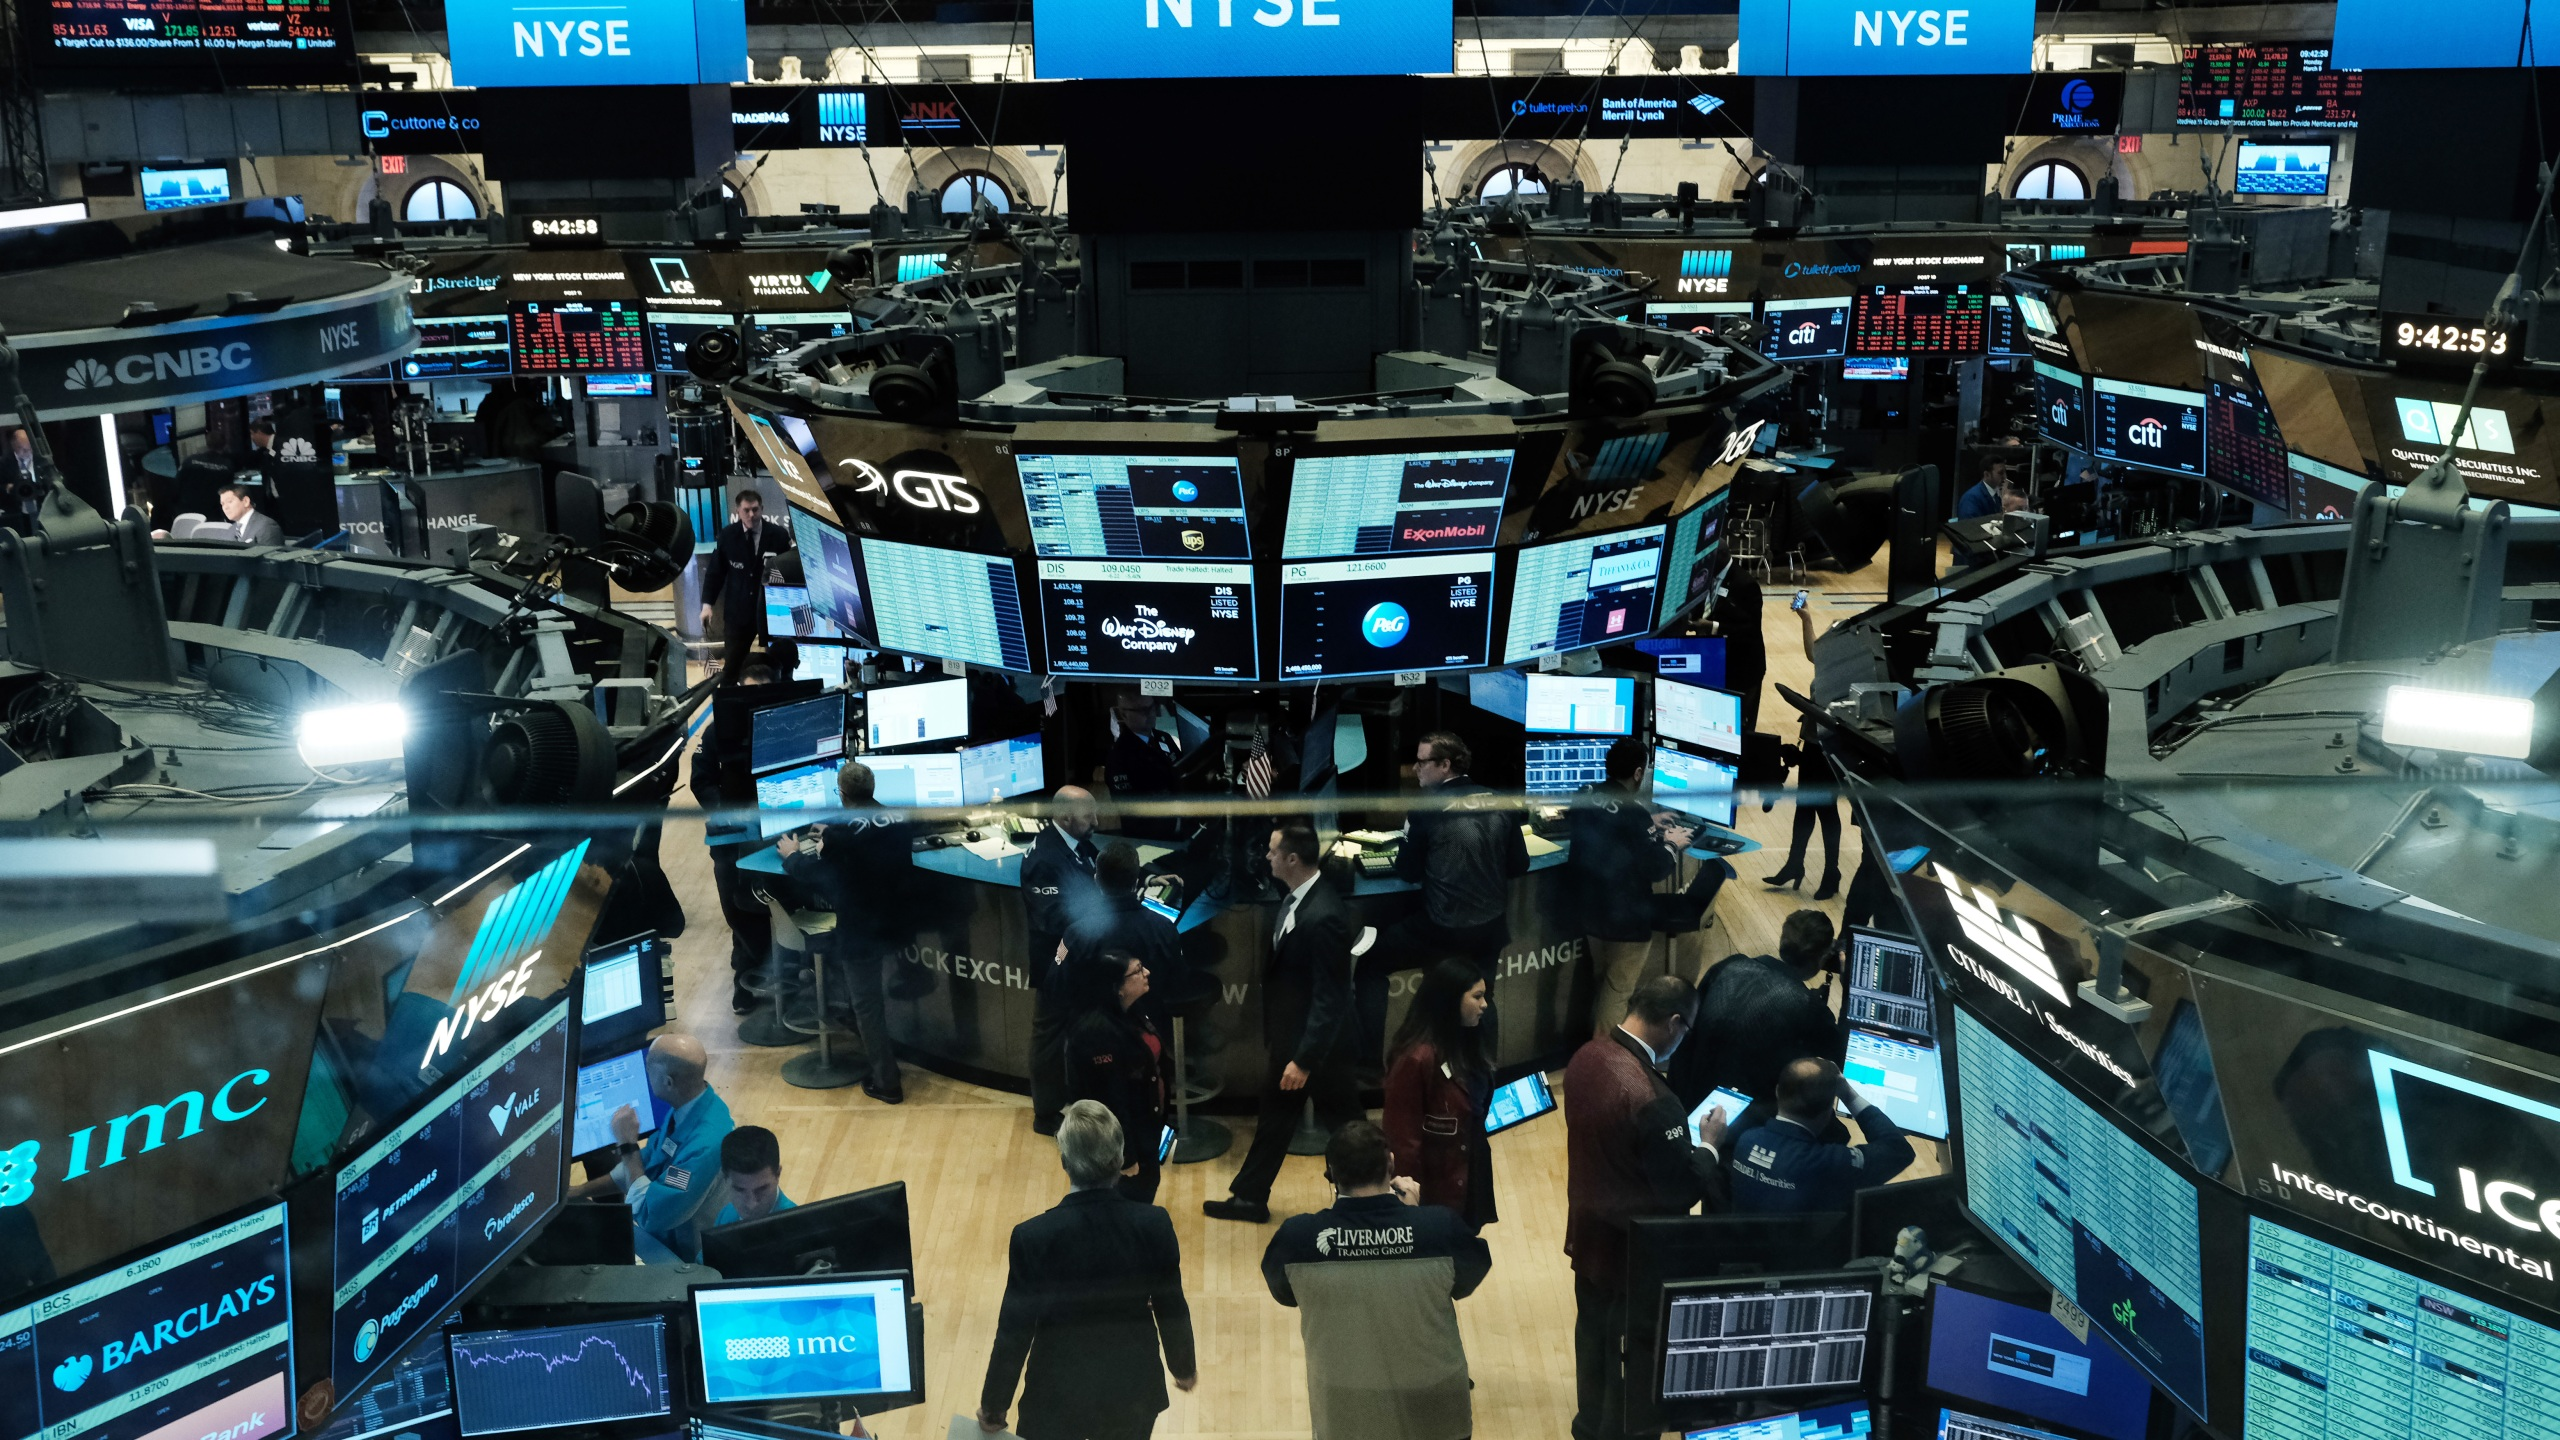 Traders work on the floor of the New York Stock Exchange (NYSE) on March 9, 2020 in New York City. (Spencer Platt/Getty Images)